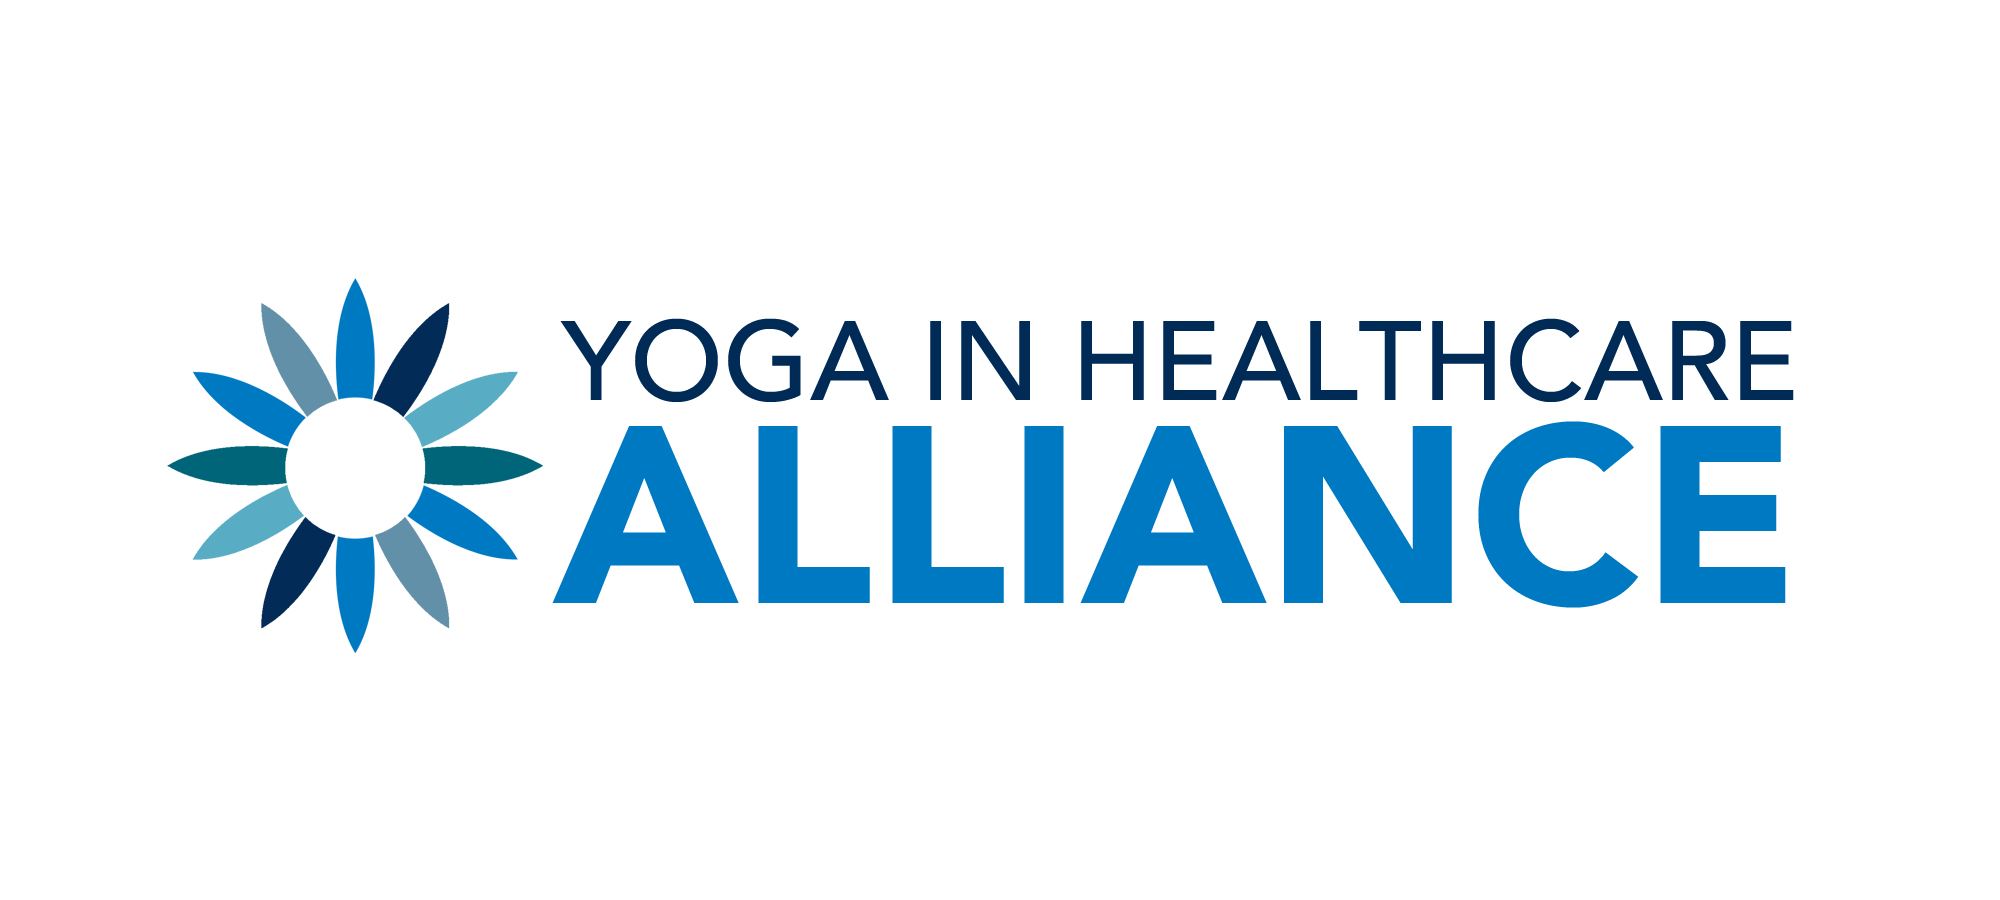 YOGA IN HEALTHCARE ALLIANCE